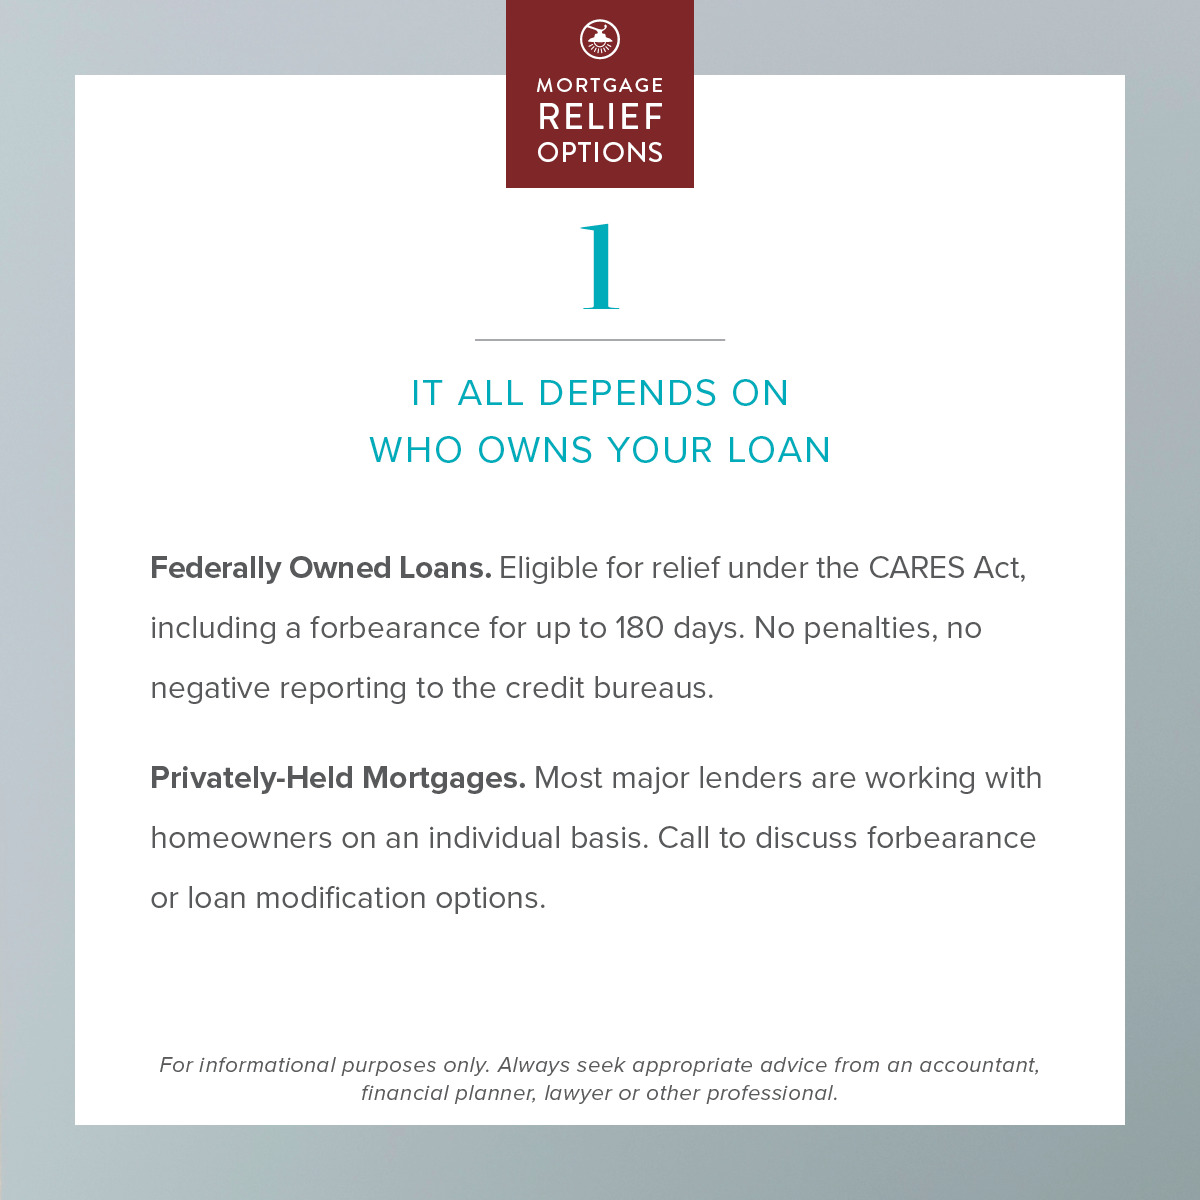 2020-MortgageReliefOptions_SOCIAL_1